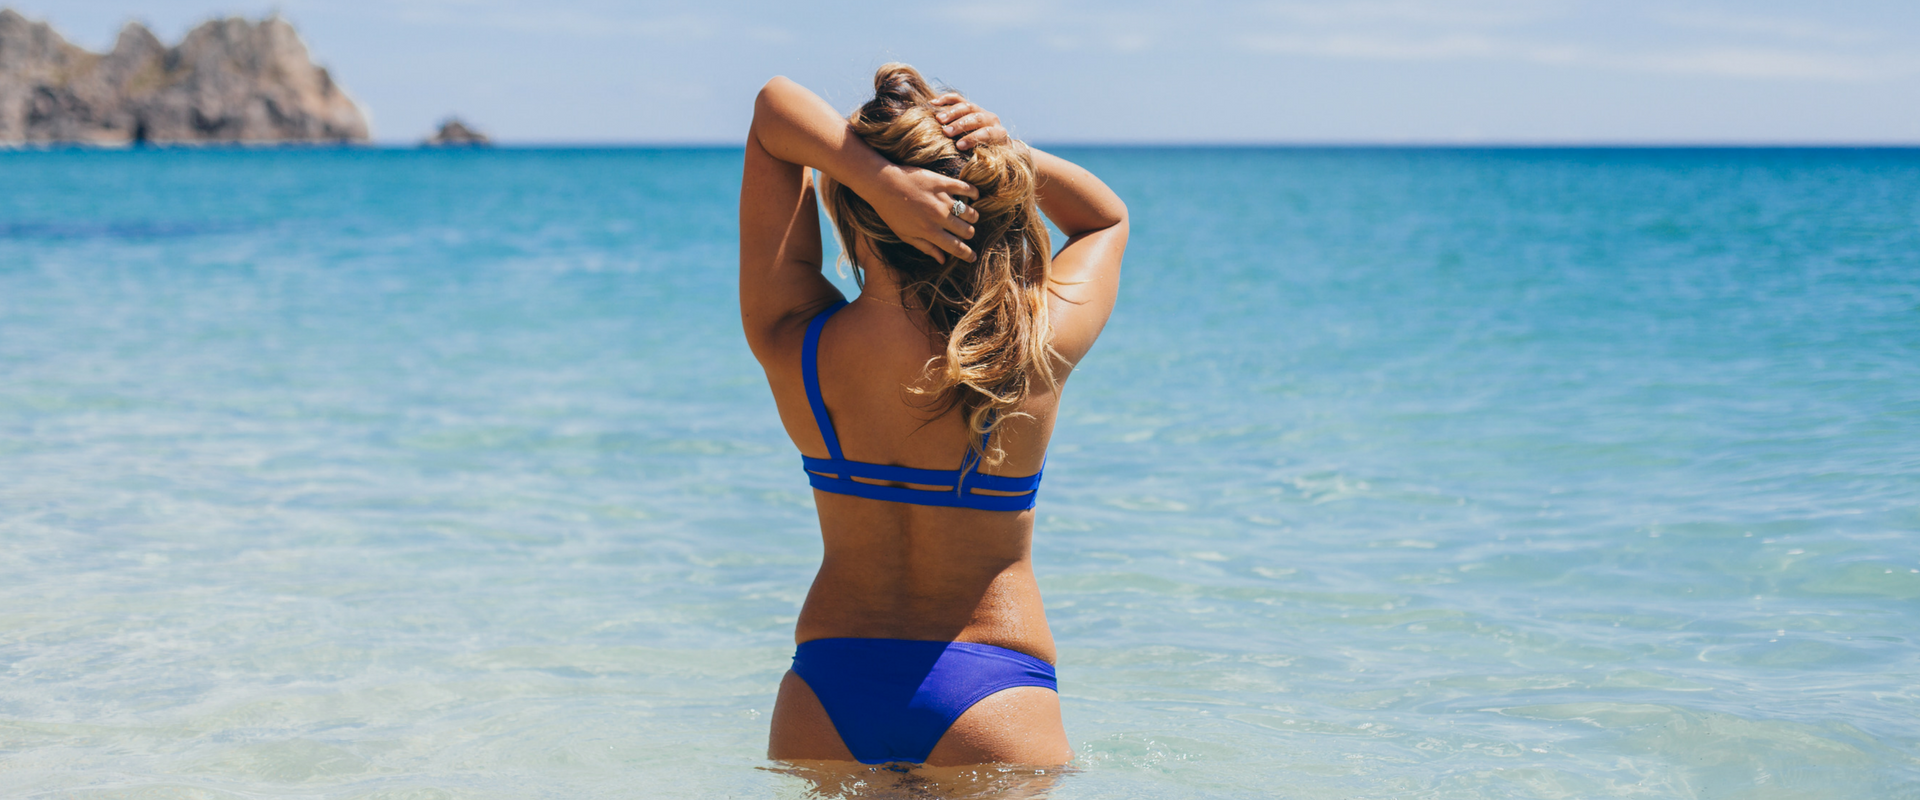 Pro Surfer Corinne Evans for Azura Bay Swimwear